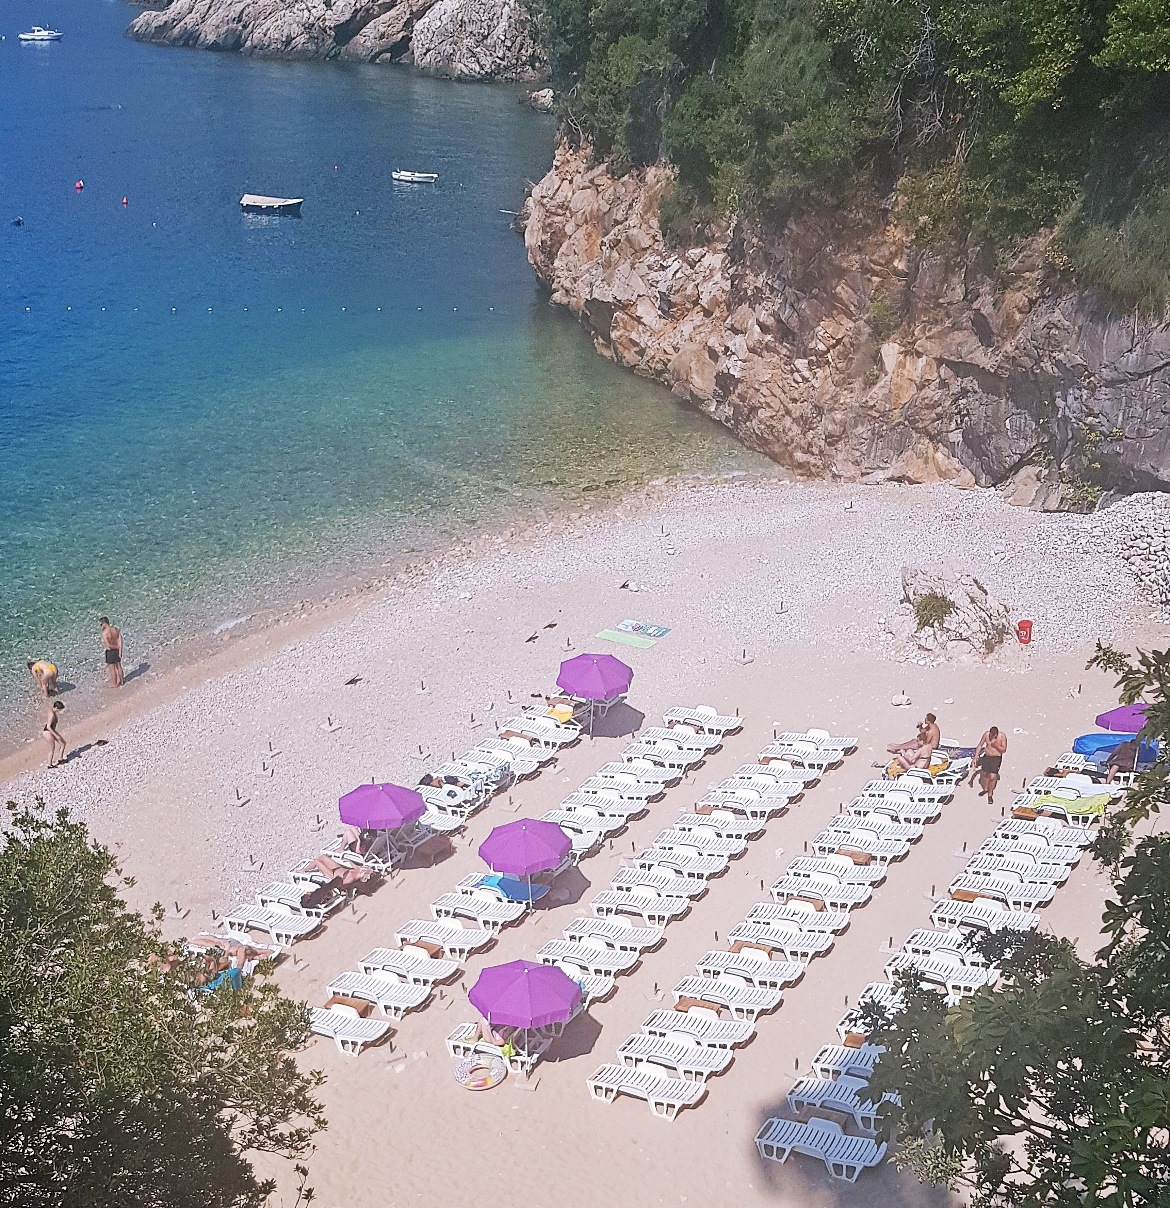 Sveti Jakov beach - Sightseeing in Dubrovnik, Croatia - Top Travel Tips by BeckyBecky Blogs